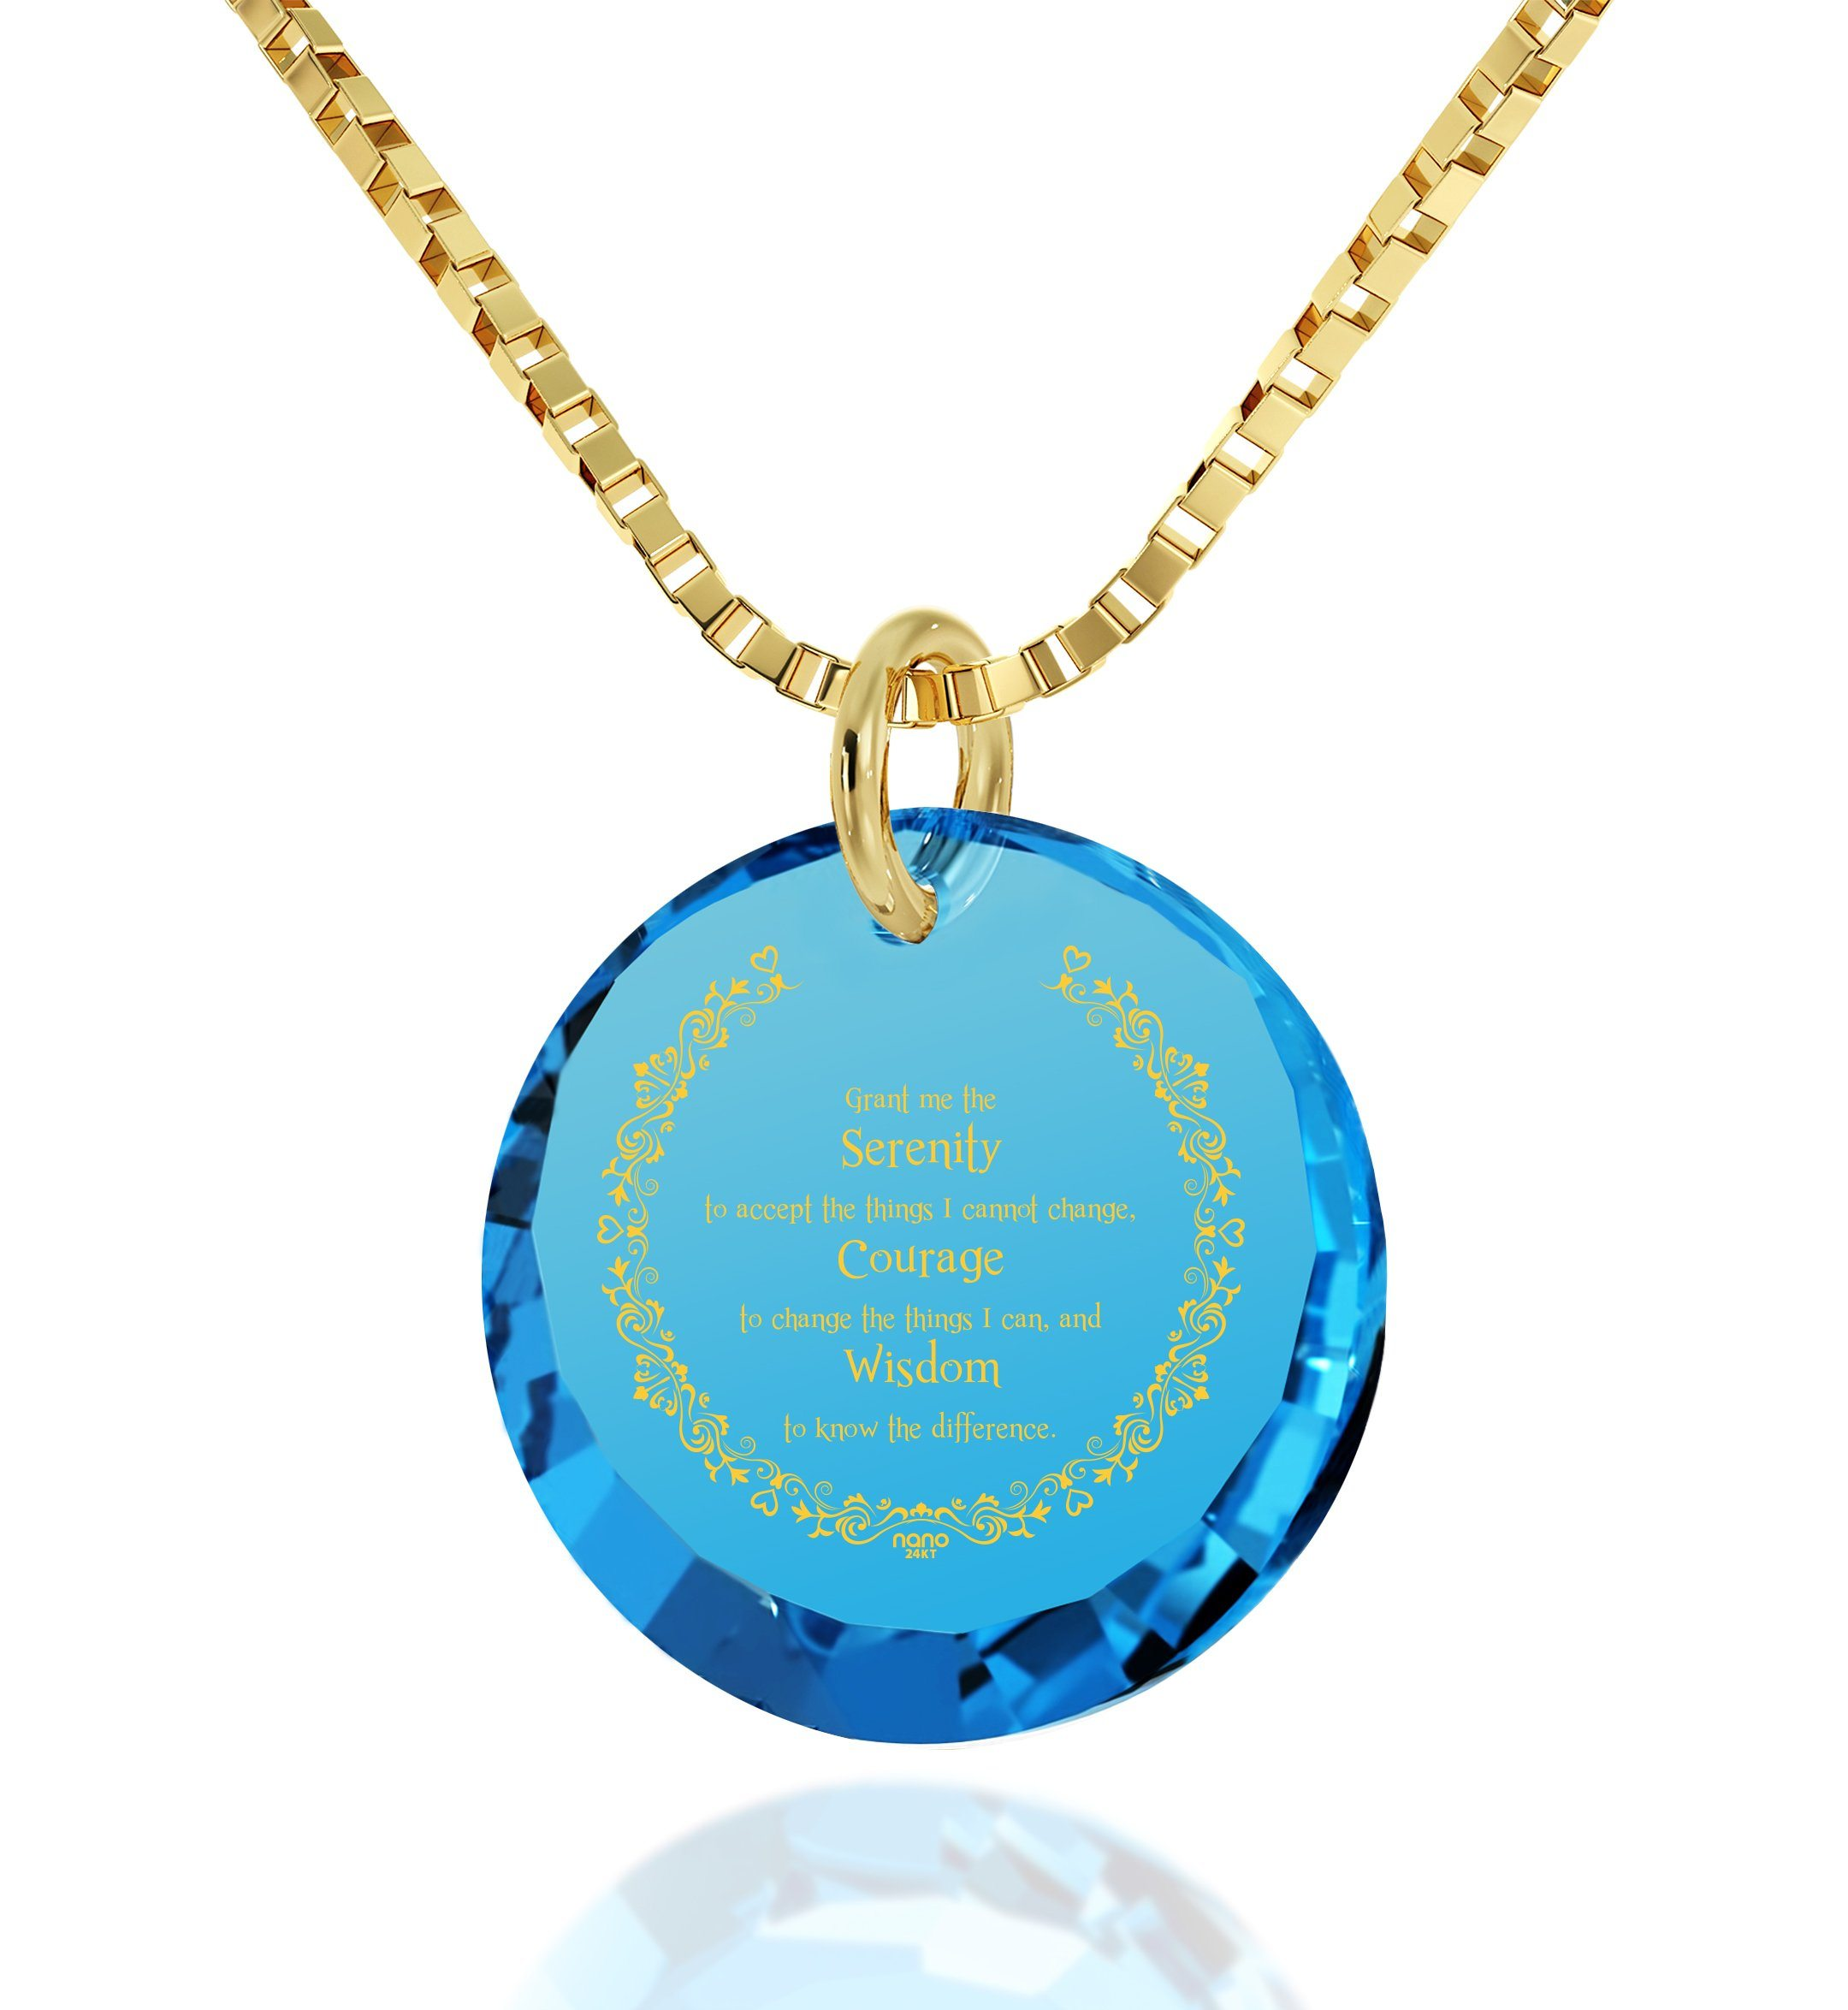 Serenity Prayer Jewelry: What to Get Girlfriend for Birthday, Womens Presents, Blue Topaz Necklace, Nano Jewelry